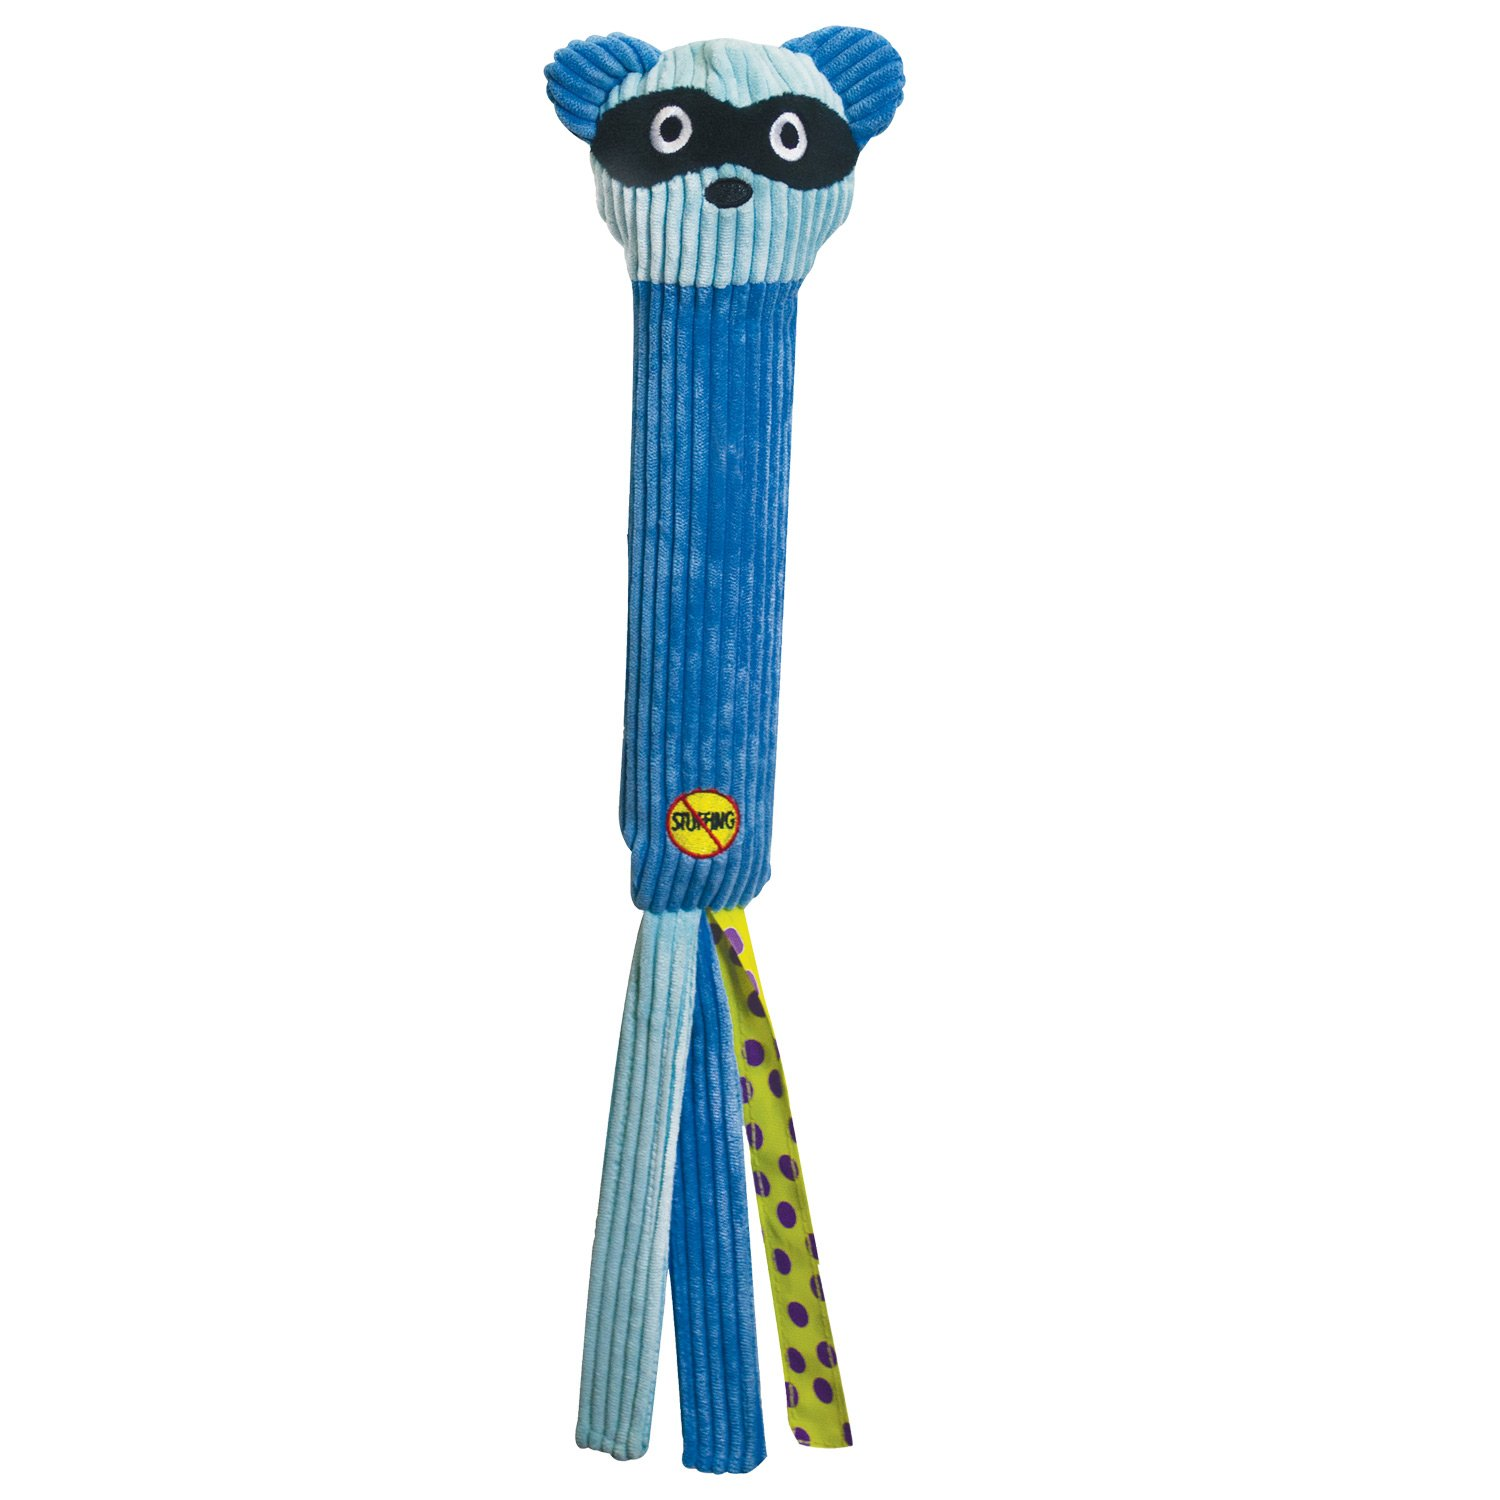 Petstages Stuffing Free Play Stick Dog Toy